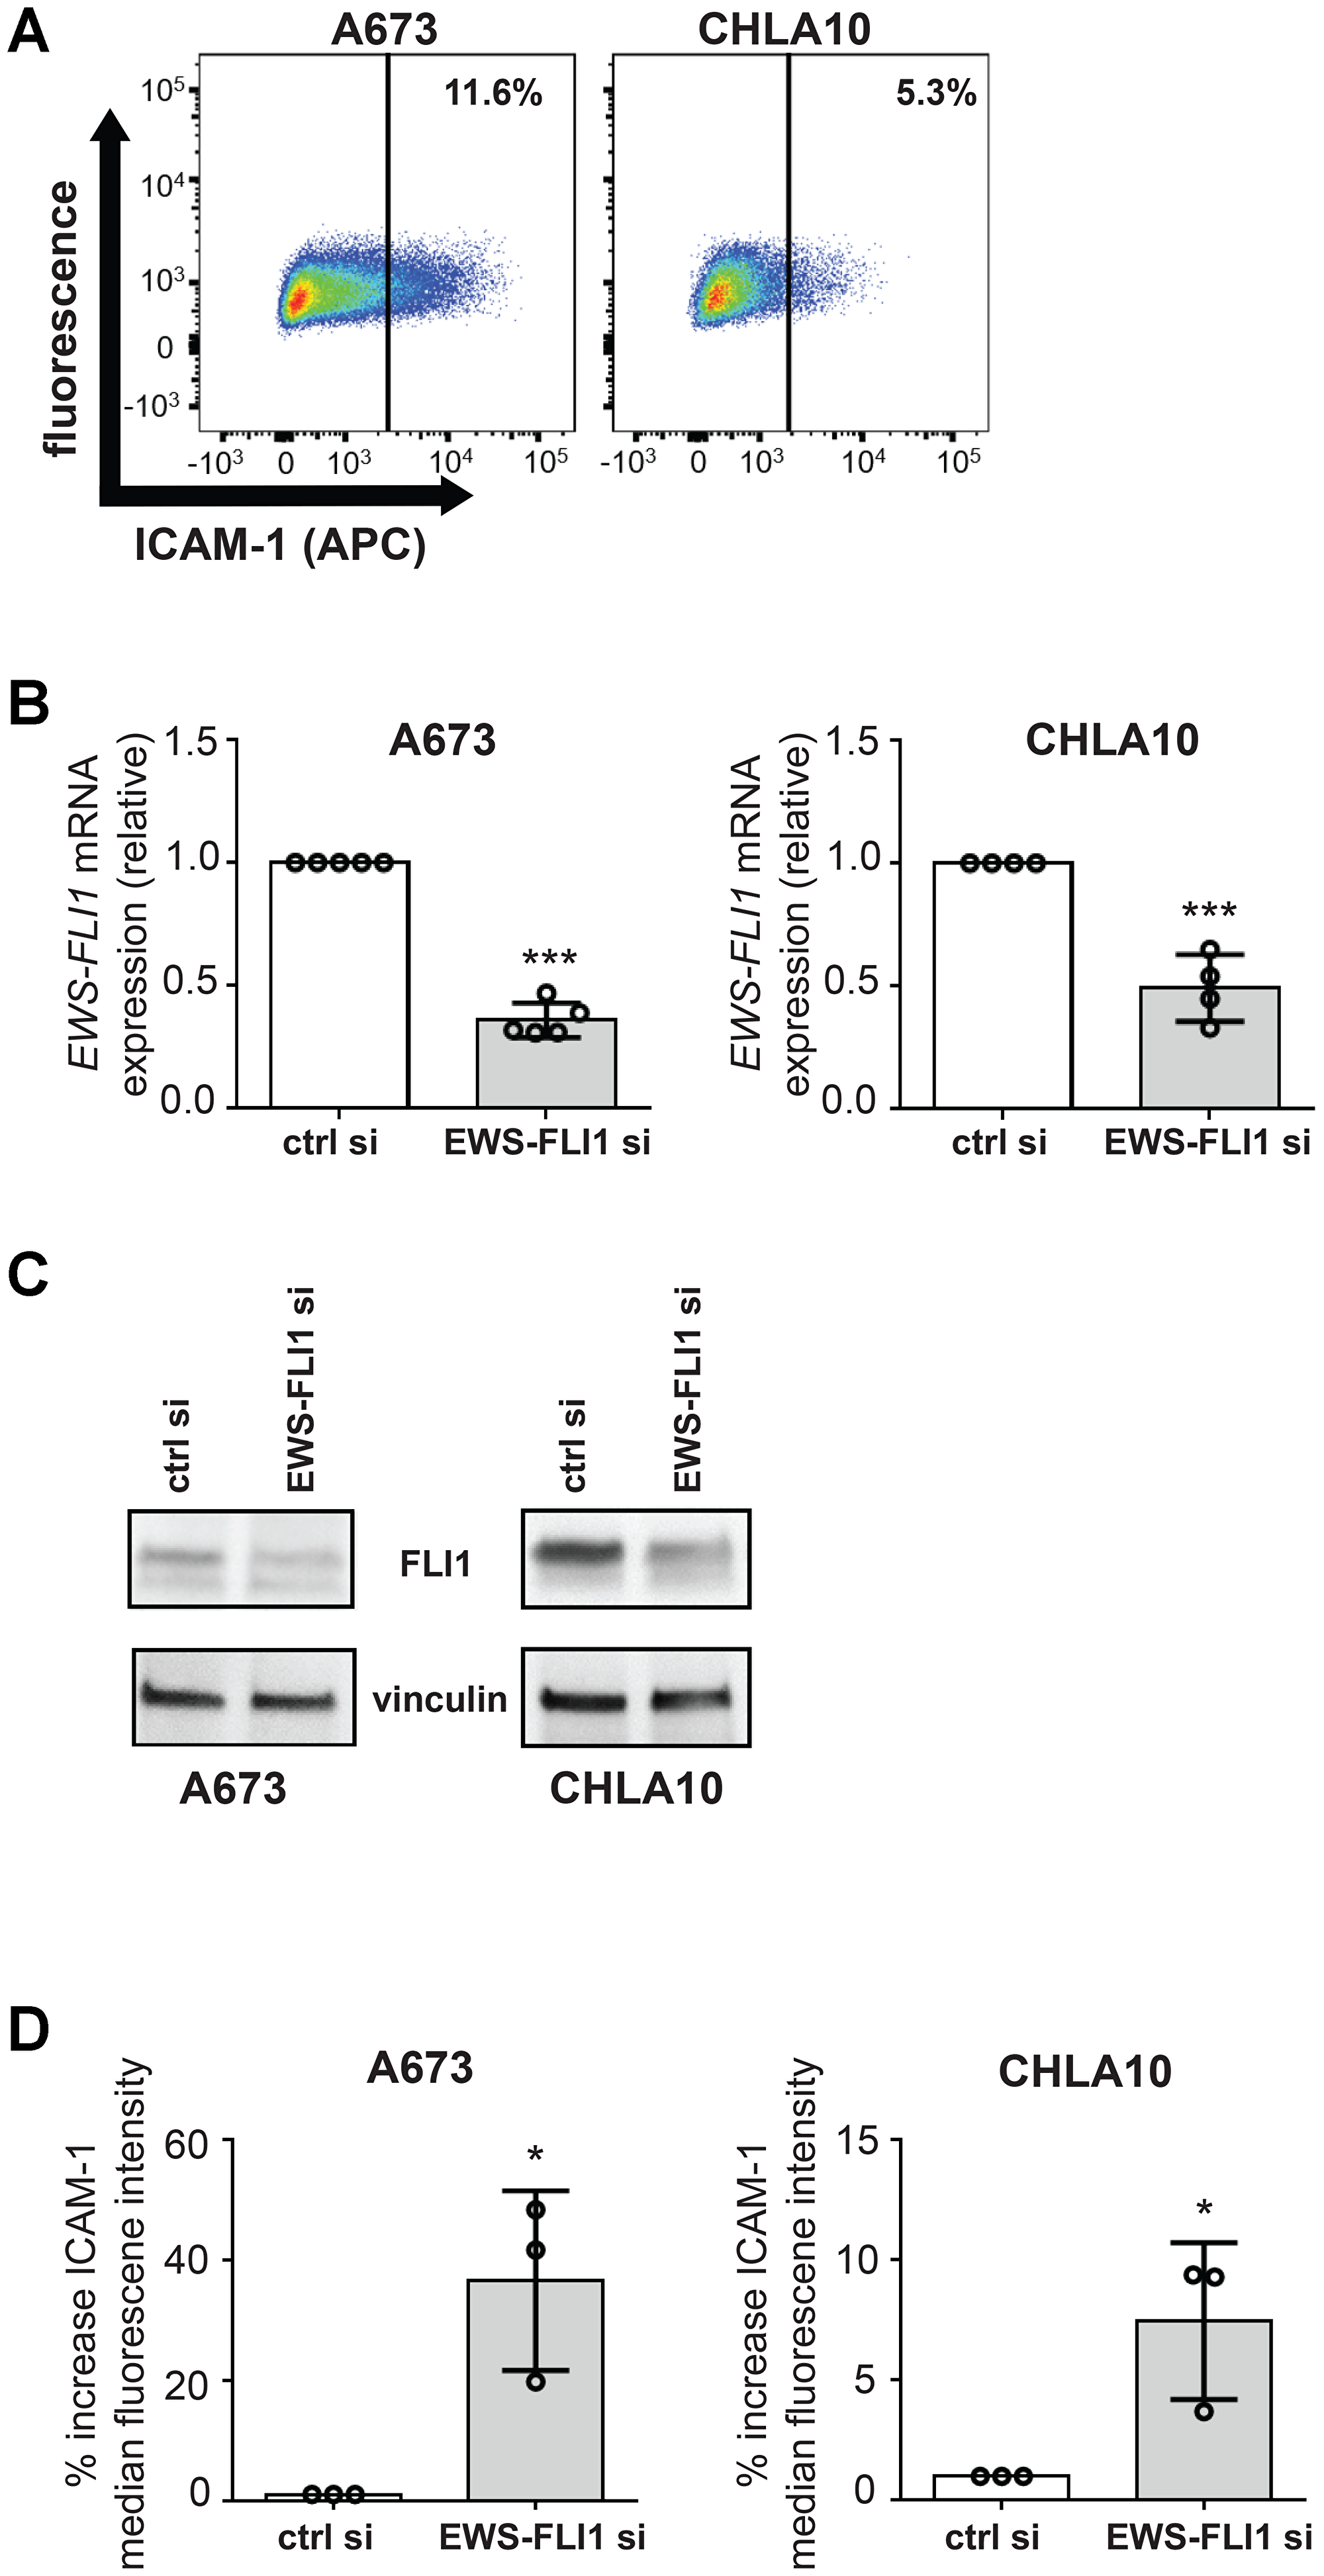 EWS-FLI1 and ICAM-1 expression are inversely correlated under basal conditions in our model system.